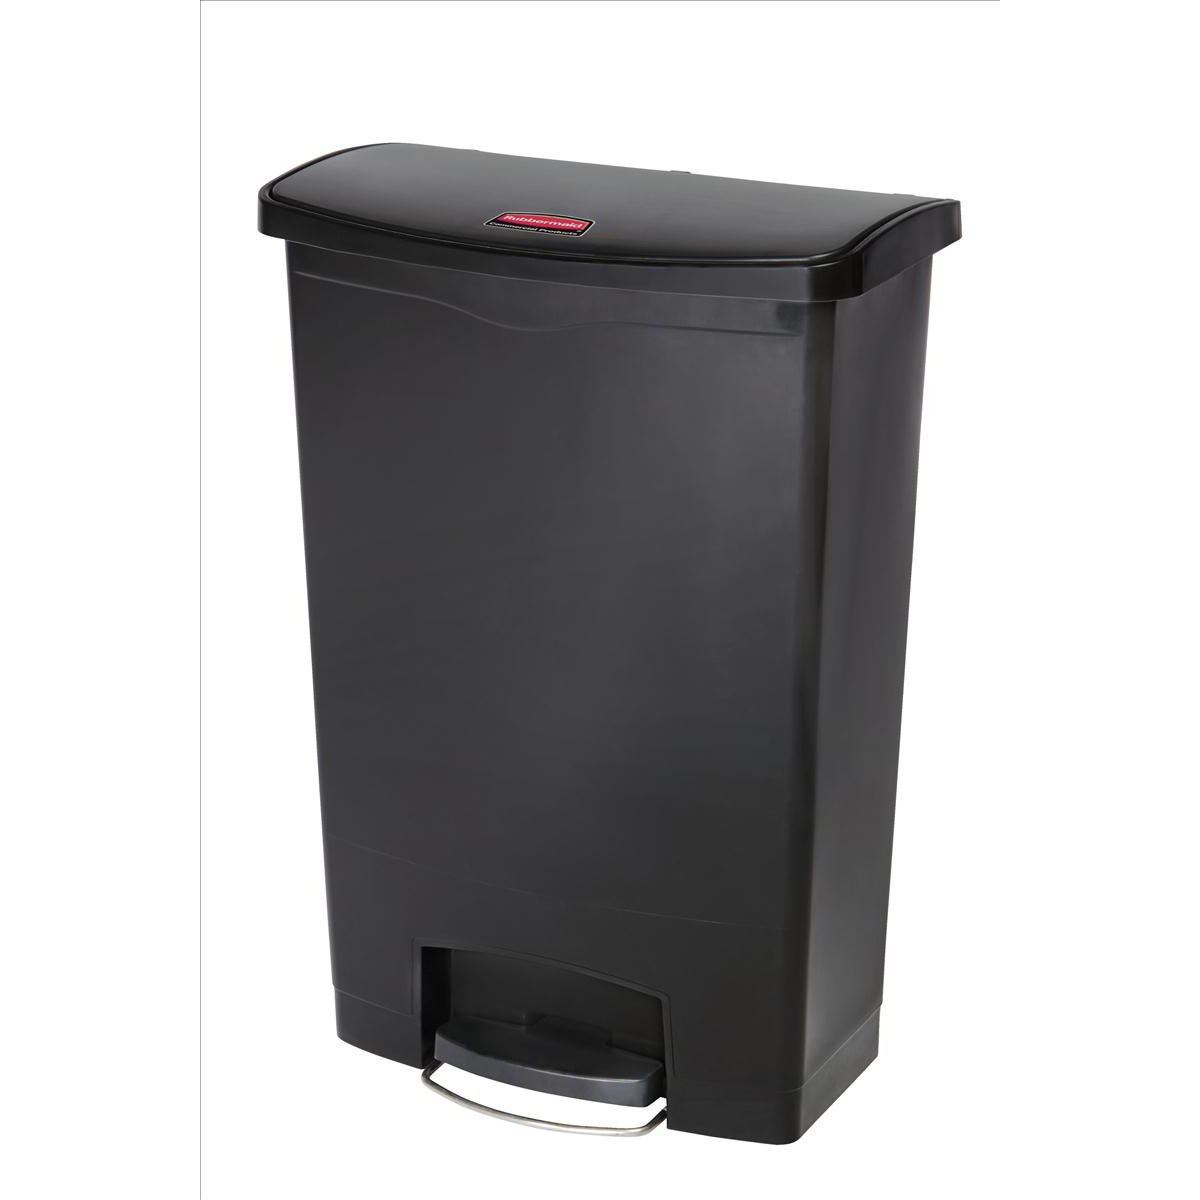 Rubbermaid Slim Step Bin 87 Litre Black Ref 1883615